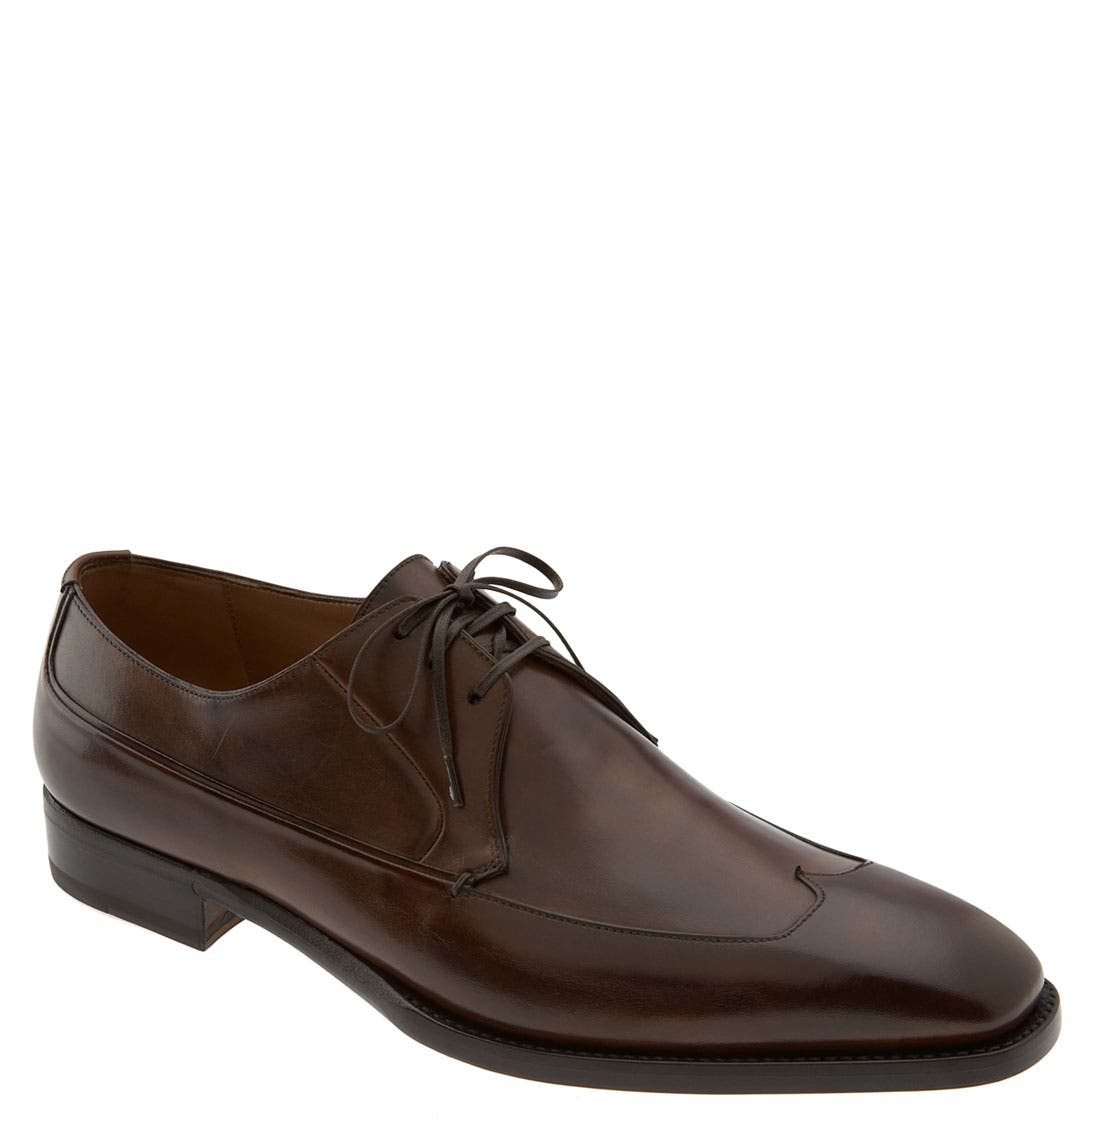 Main Image - Sassetti 'Treviso' Wing Tip Oxford